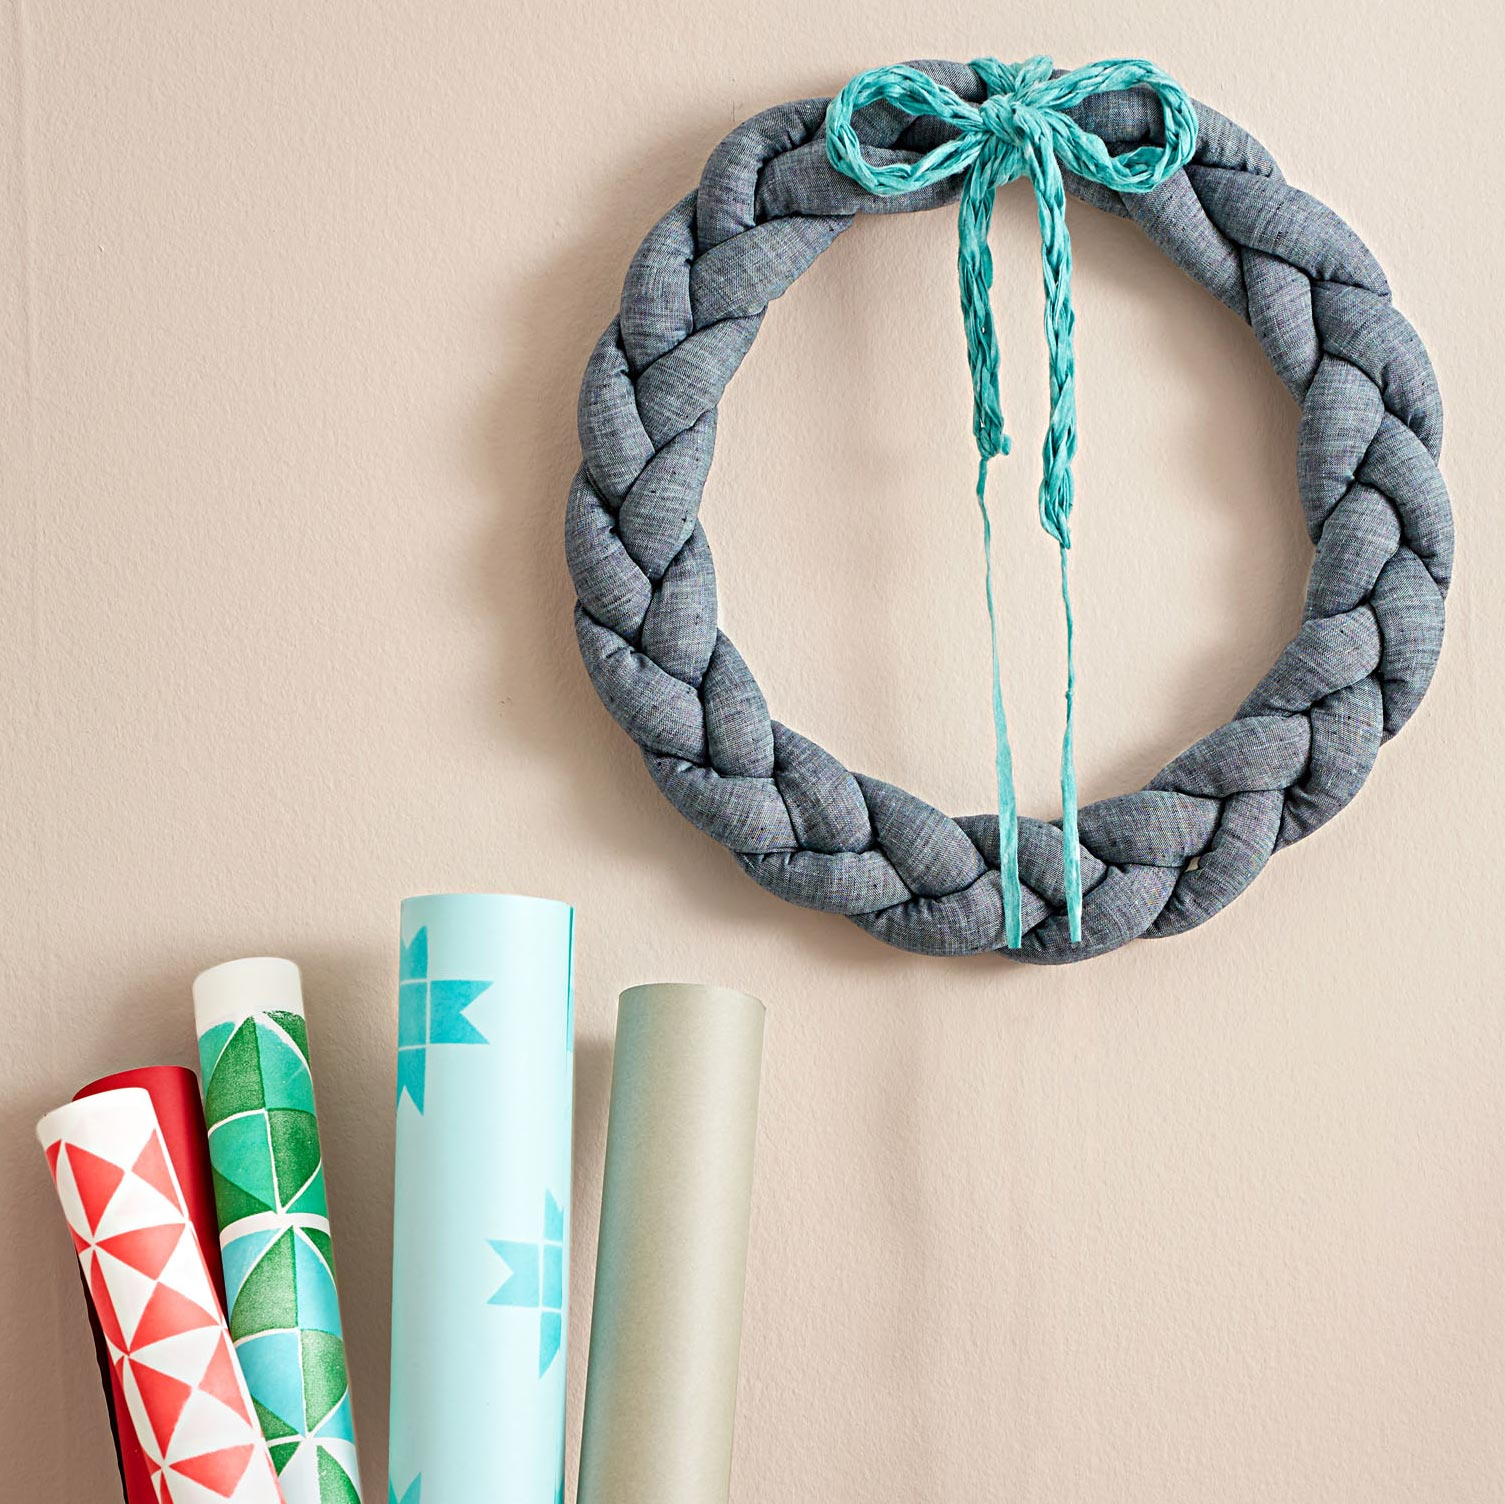 Braided wreath